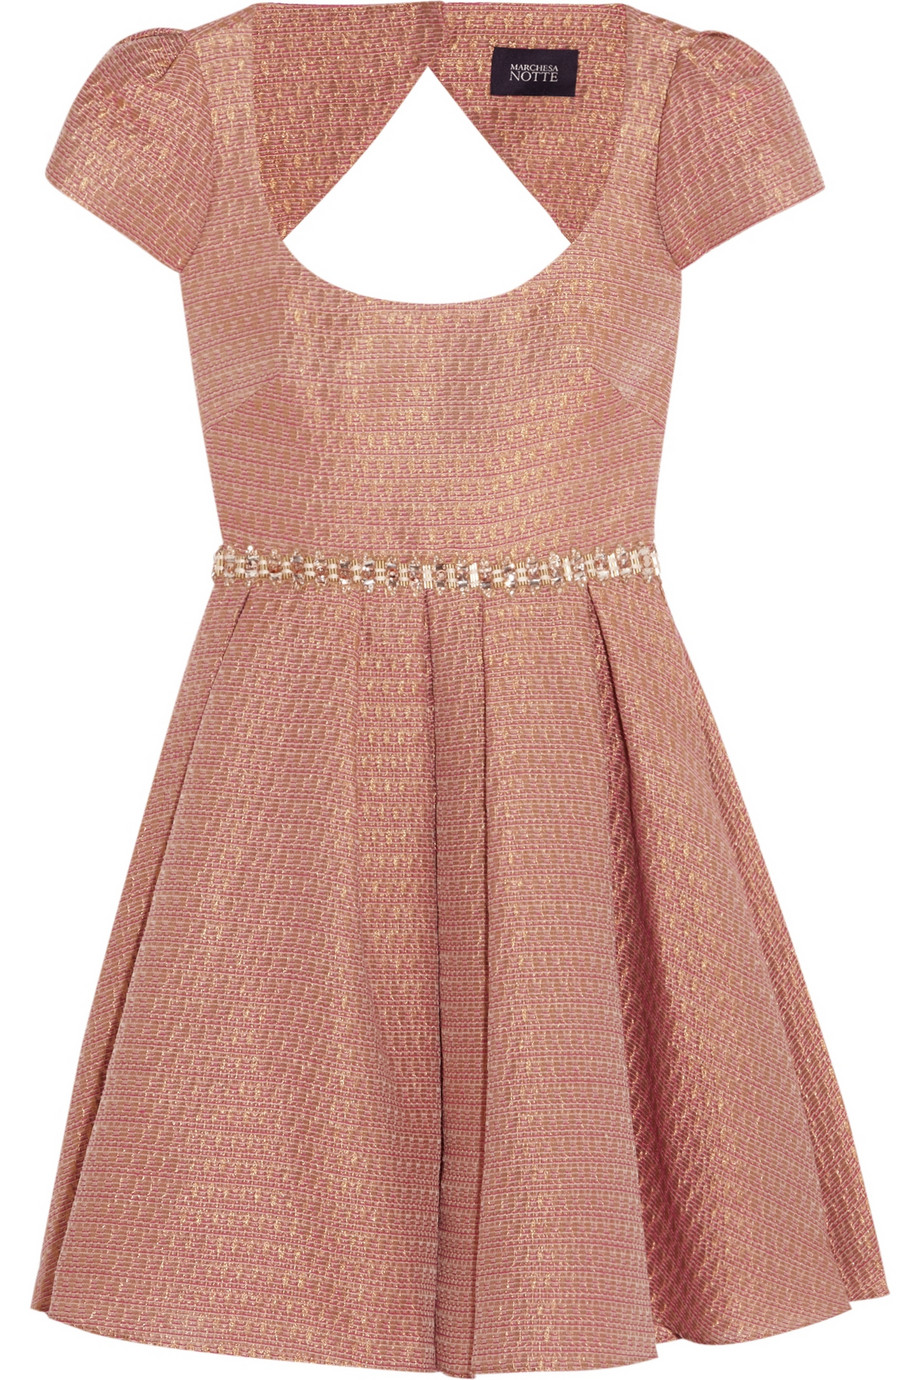 Notte by Marchesa Embellished metallic jacquard mini dress – 55% at THE OUTNET.COM